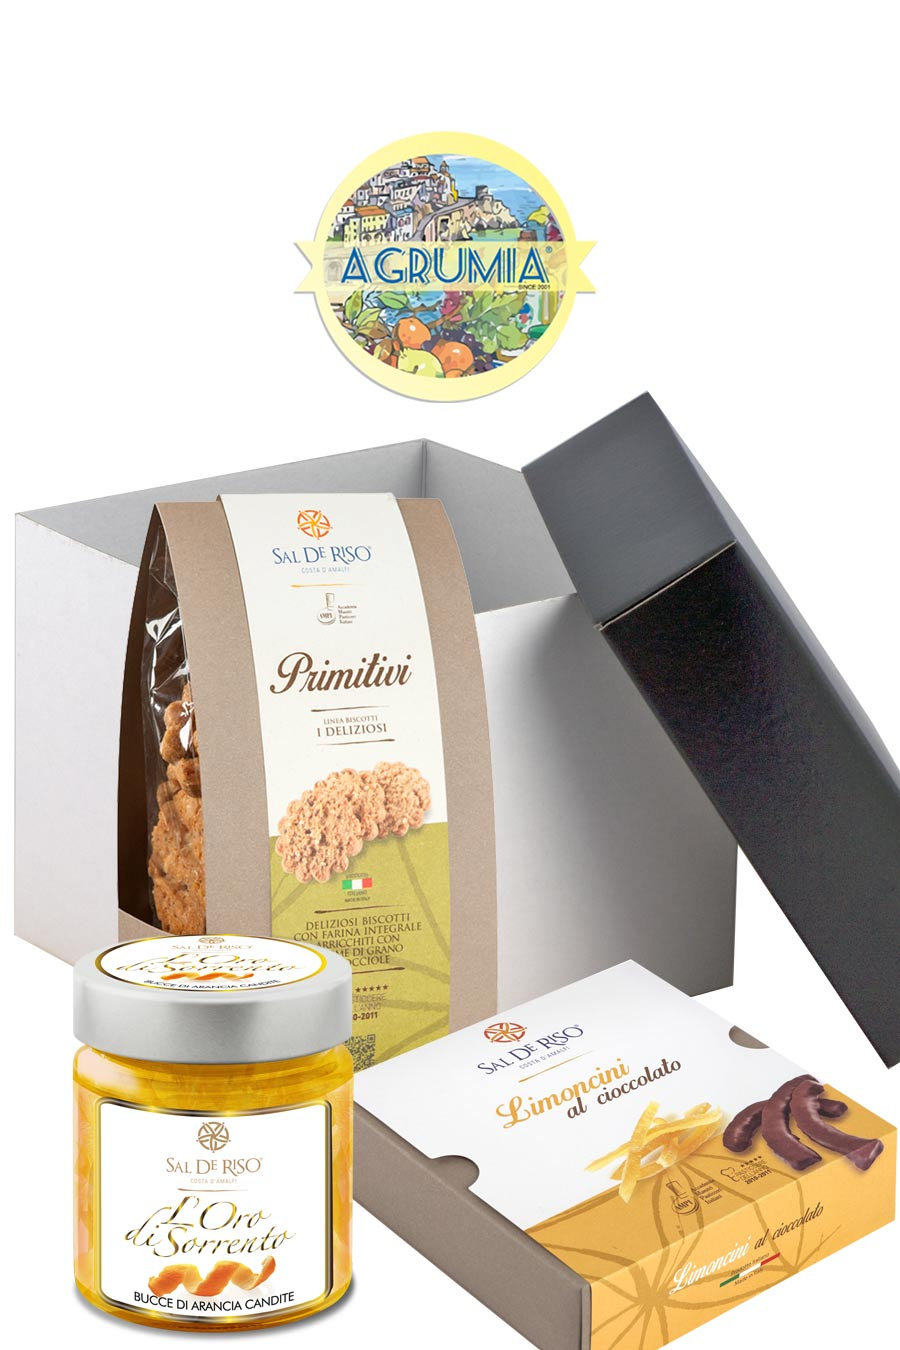 The Exclusive Little Sweet Hamper - Agrumia